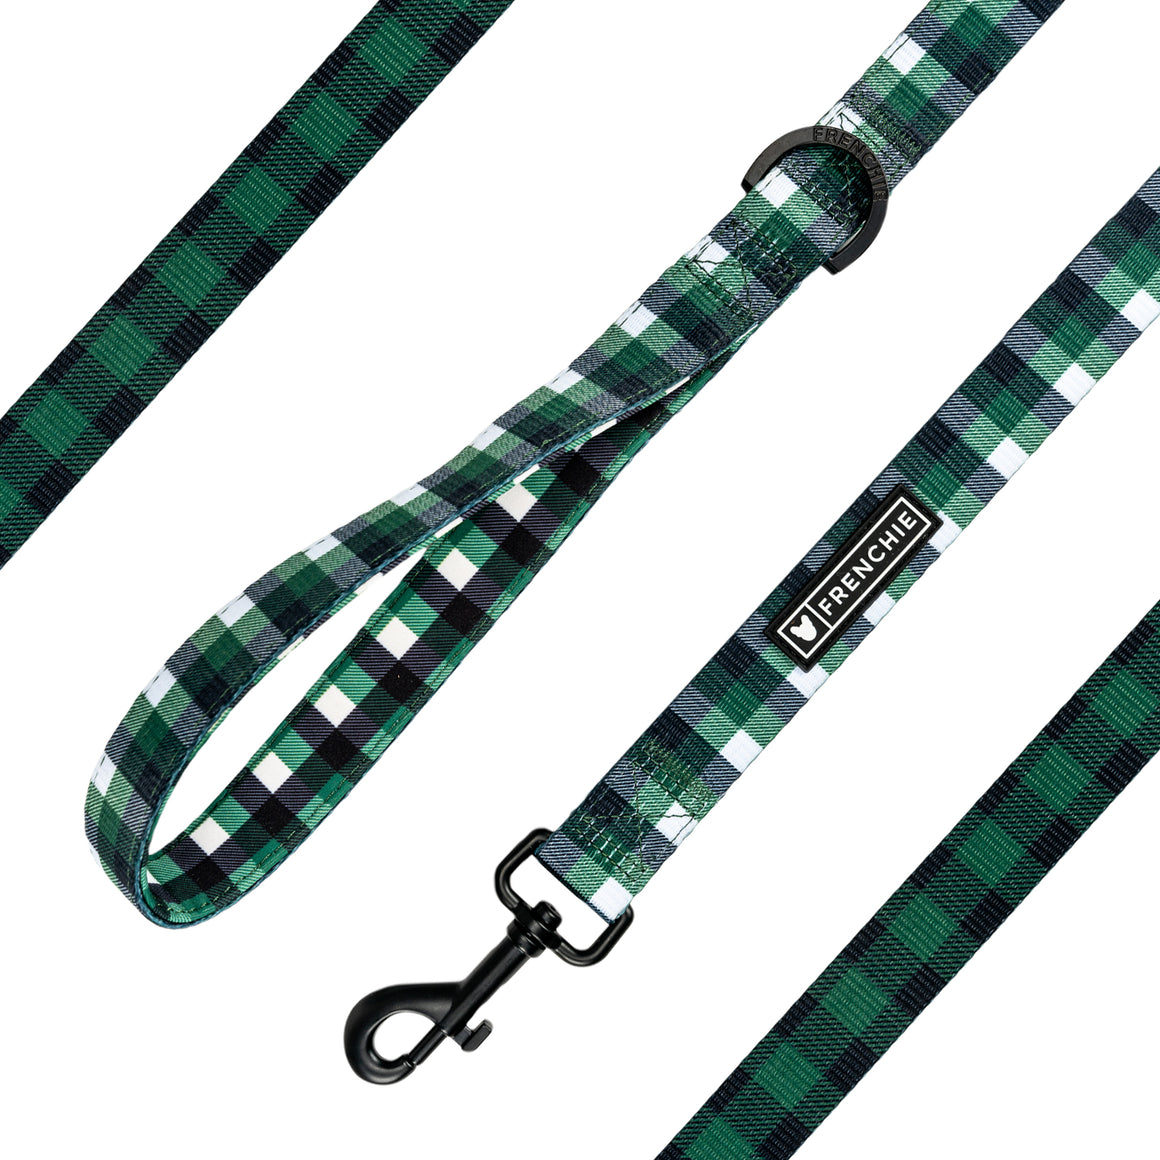 Frenchie Comfort Leash - Emerald Plaid - Frenchie Bulldog - Shop Harnesses for French Bulldogs - Shop French Bulldog Harness - Harnesses for Pugs